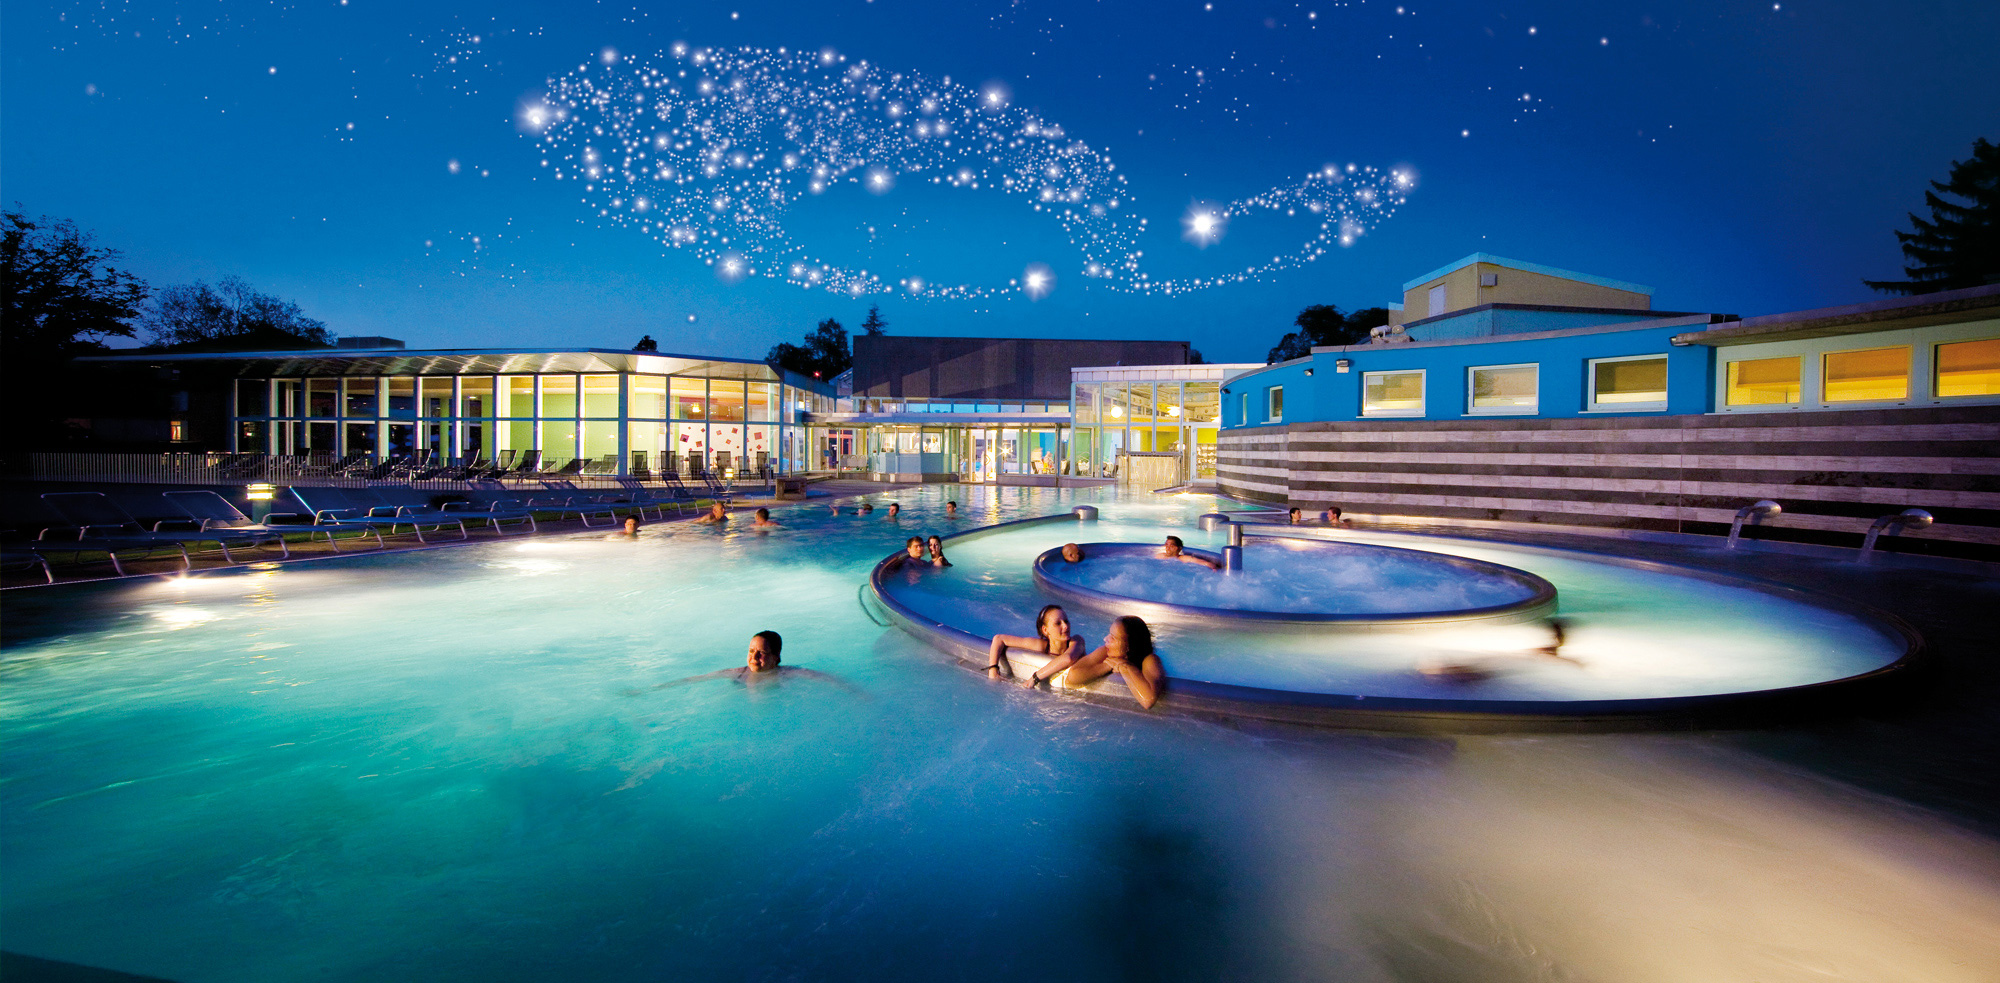 This image shows Sole Uno Wellness, the infamous Whirlwind Pool in Switzerland.